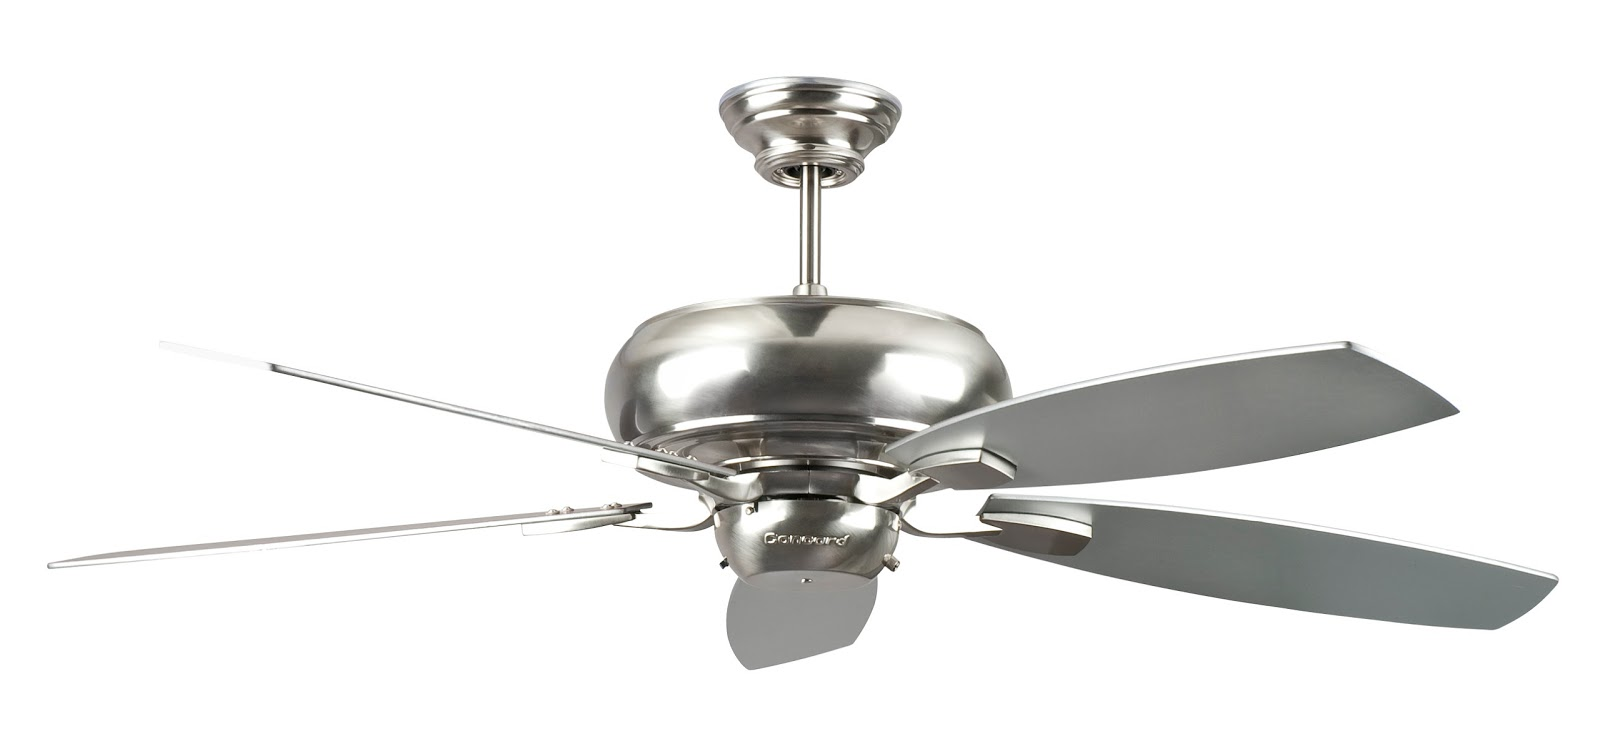 Stainless steel ceiling fan - Pictures of ceiling fans ...